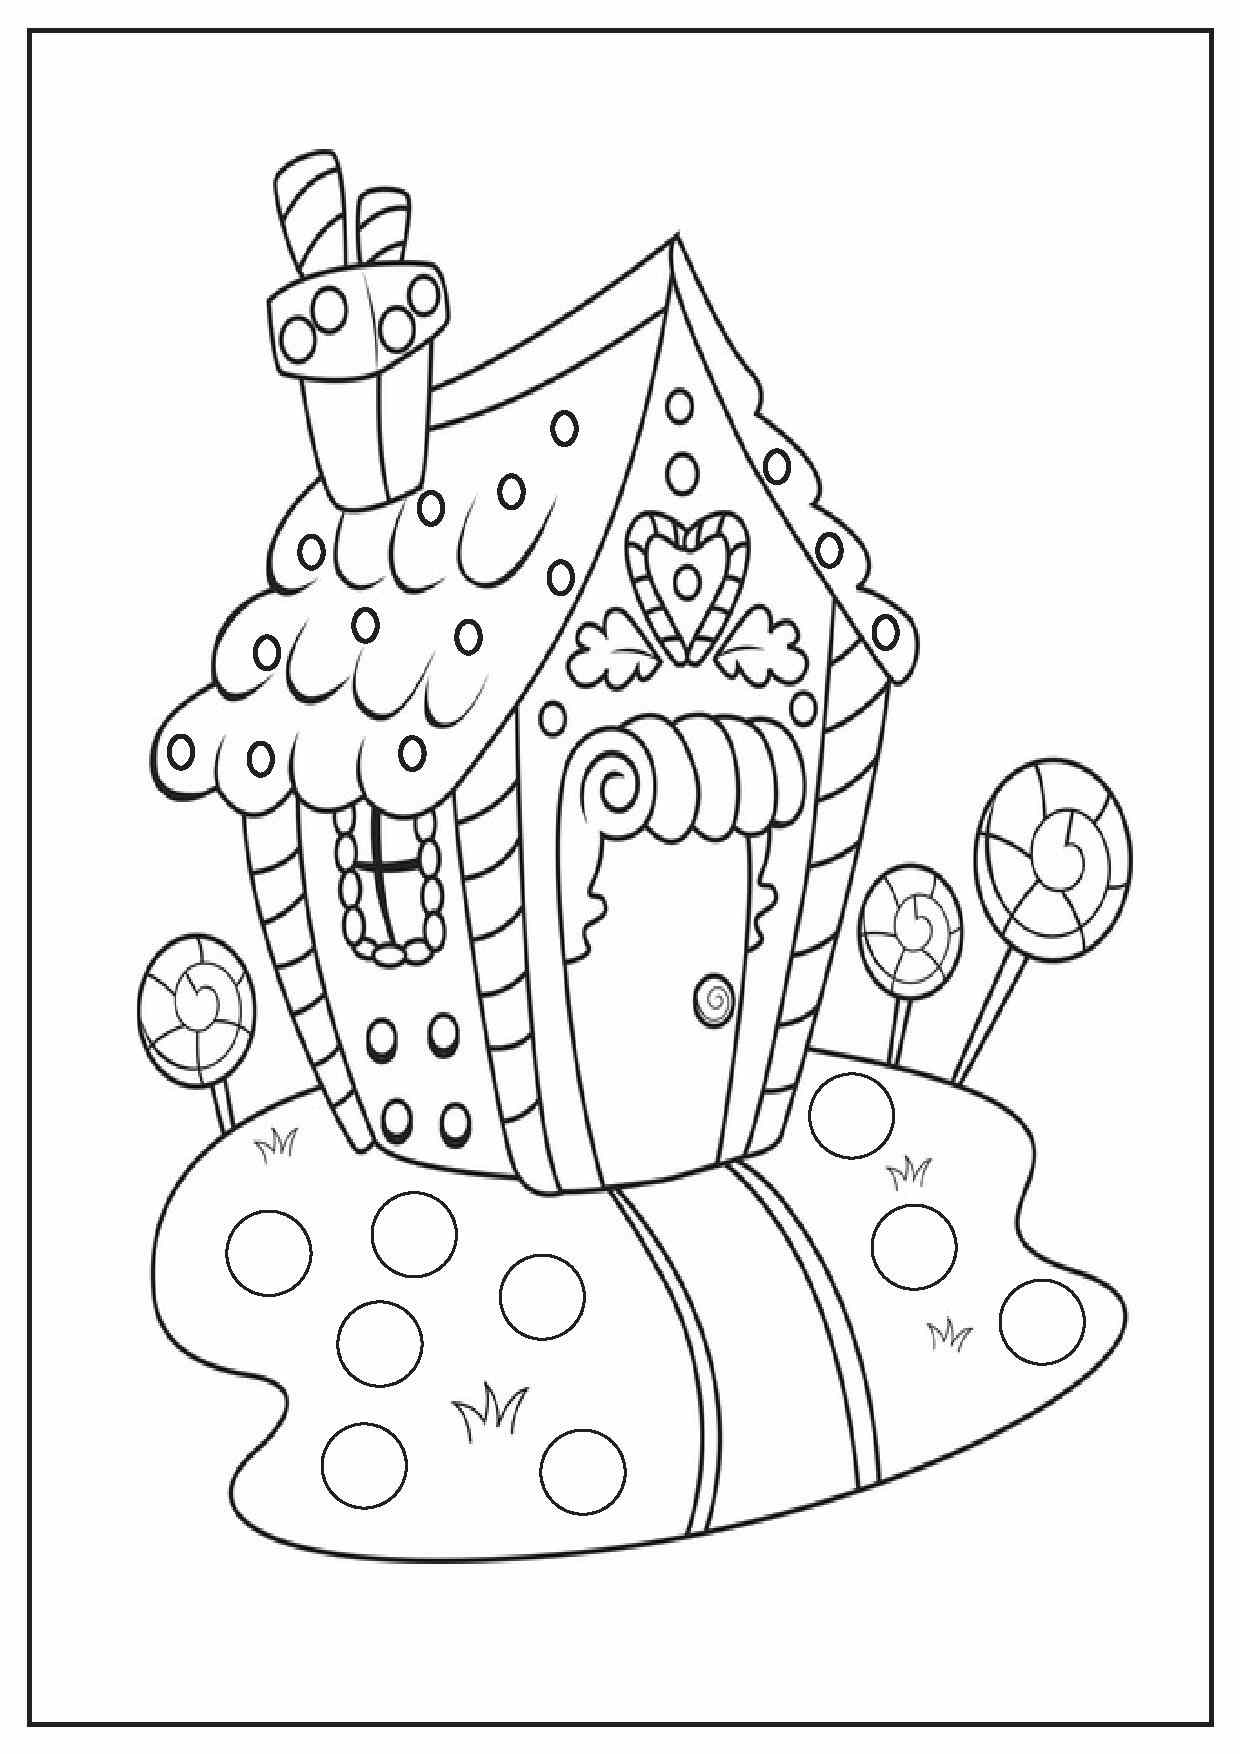 kindergarten coloring sheets only coloring pages. Black Bedroom Furniture Sets. Home Design Ideas